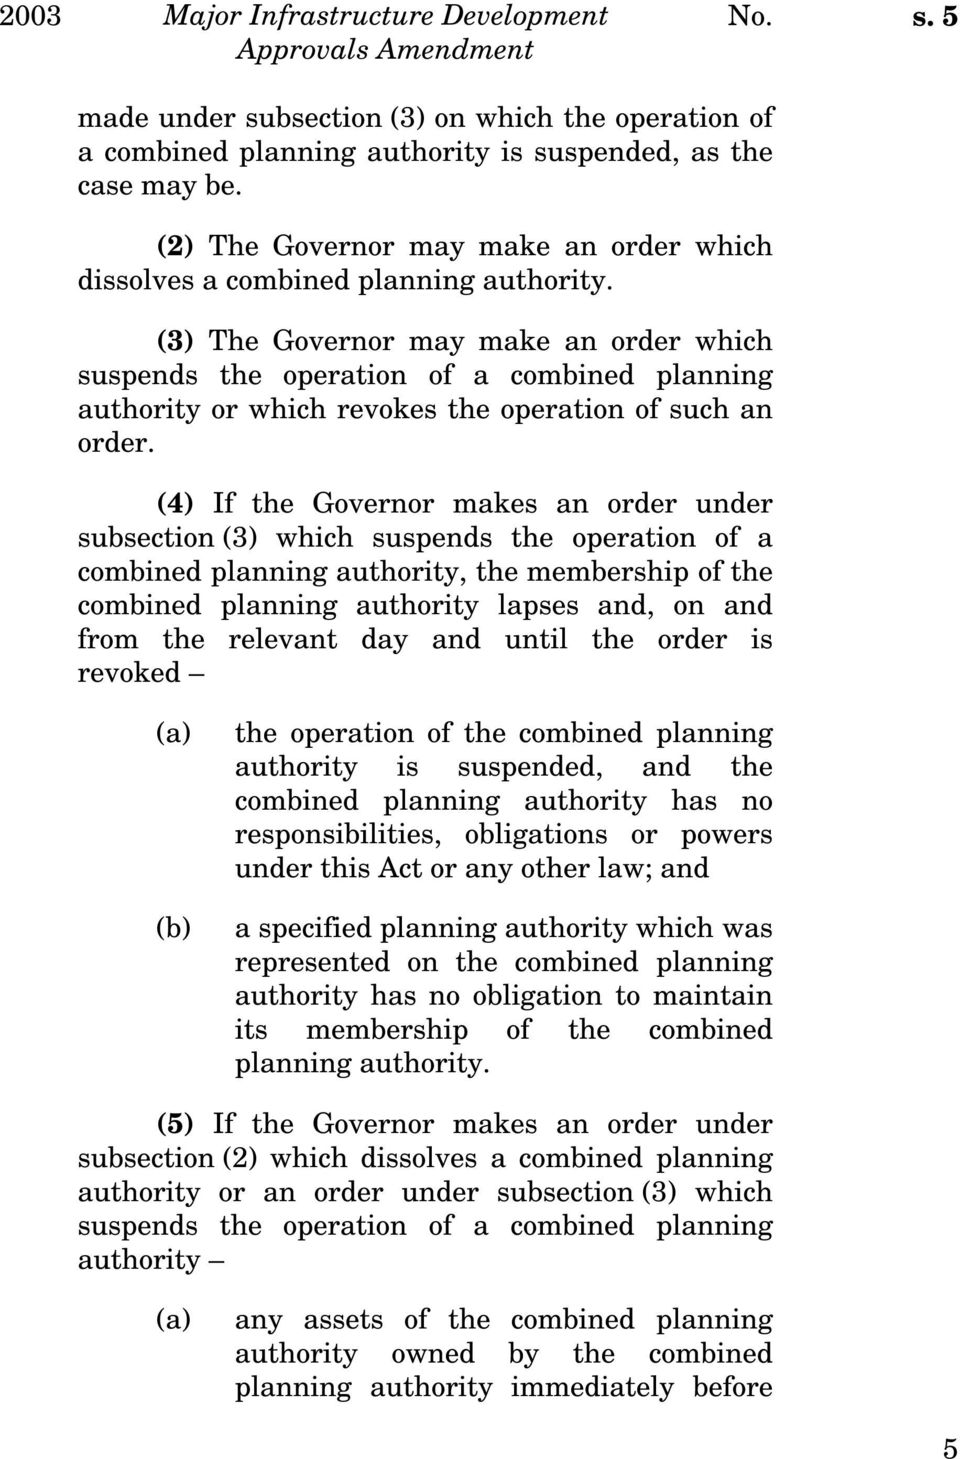 (3) The Governor may make an order which suspends the operation of a combined planning authority or which revokes the operation of such an order.